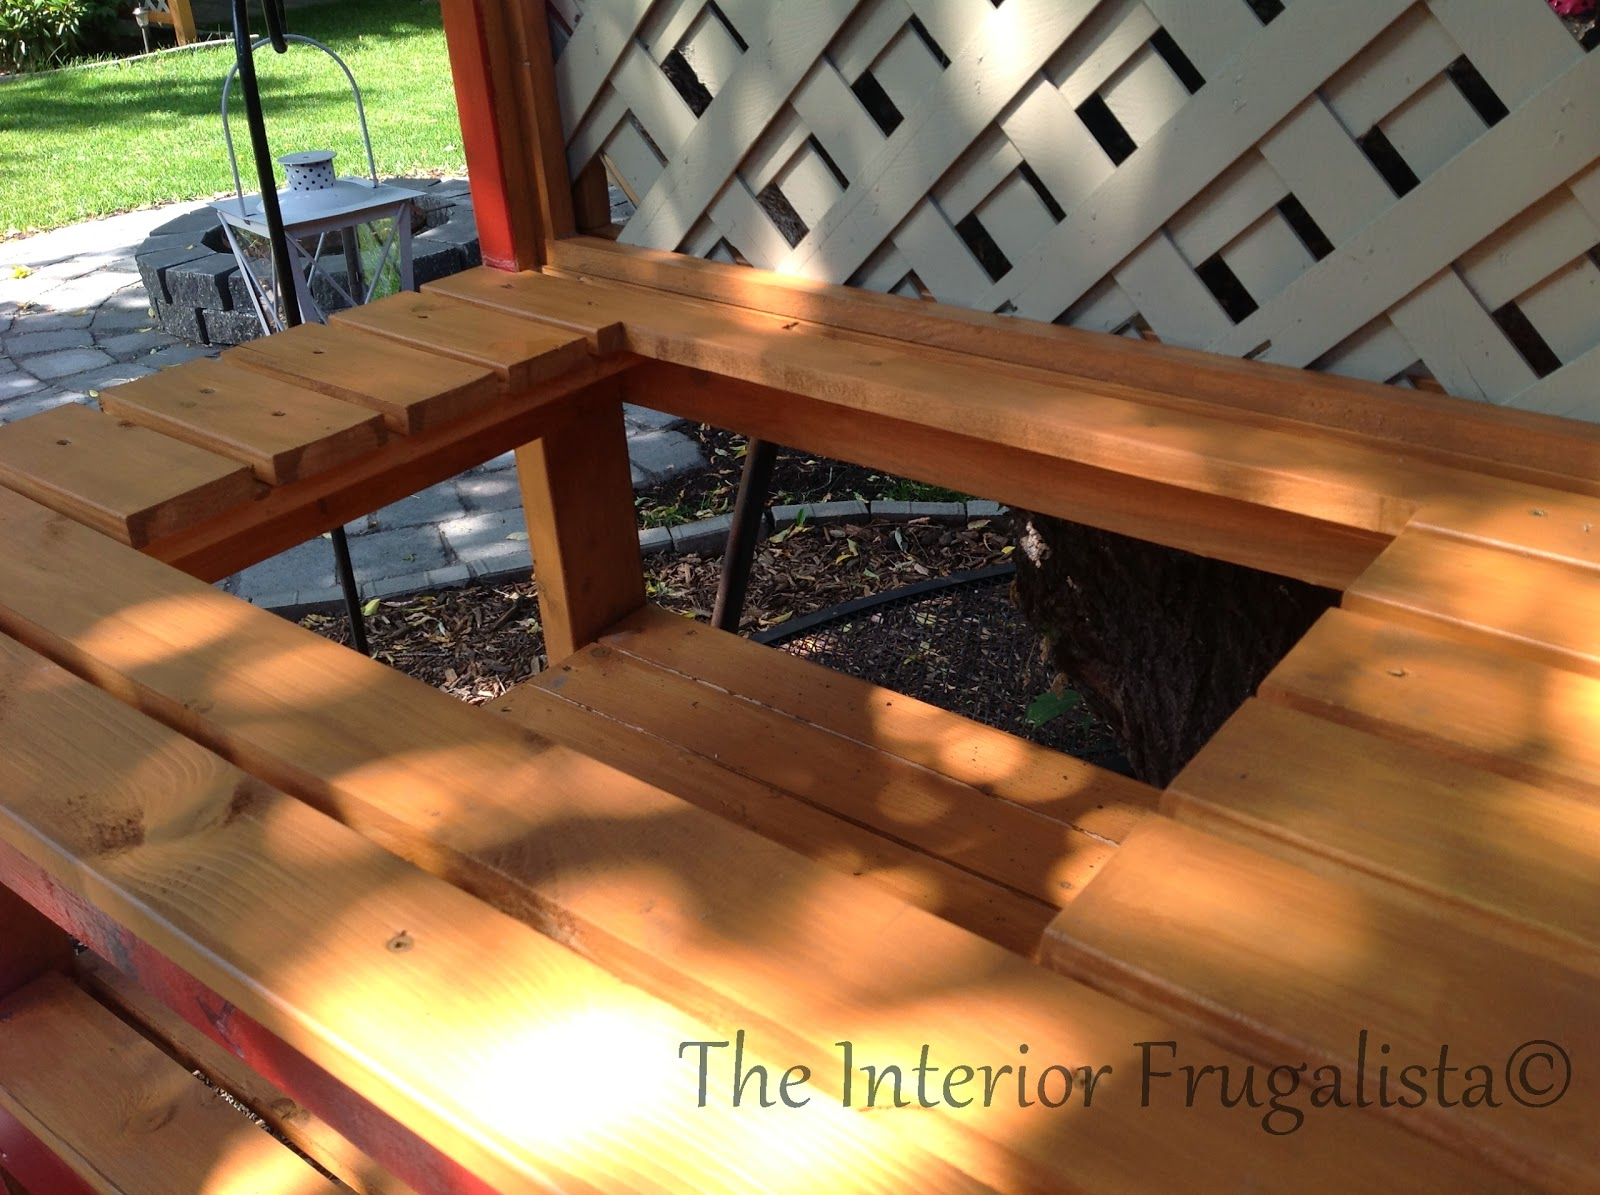 Easy DIY potting bench and outdoor bar with insert for tray or cooler